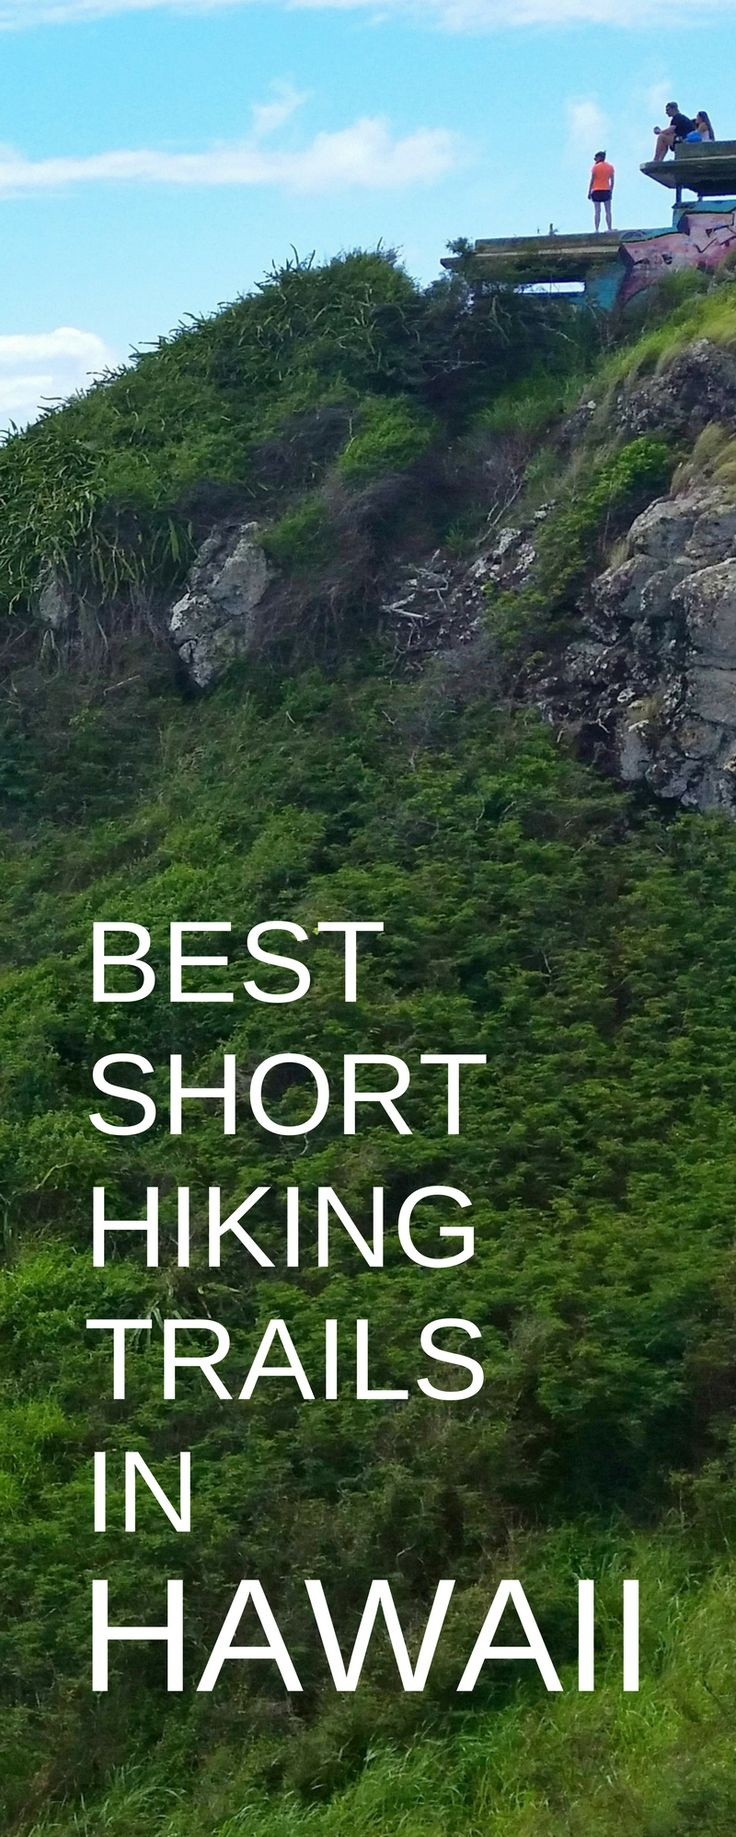 Best short hiking trails in Hawaii. Oahu hikes for vacation ideas and list of things to do on Oahu, part of perfect 3 day itinerary, 5 day, 7 day! Outdoor activities on a budget to save money on day trip adventure from Waikiki or Honolulu, near Kailua, North Shore. Free, cheap. Beaches and snorkeling nearby. Bucket list dream destinations, honeymoon. Tips for what to wear hiking and what to pack for Hawaii packing list. Oahu travel guide.#hawaii#oahu